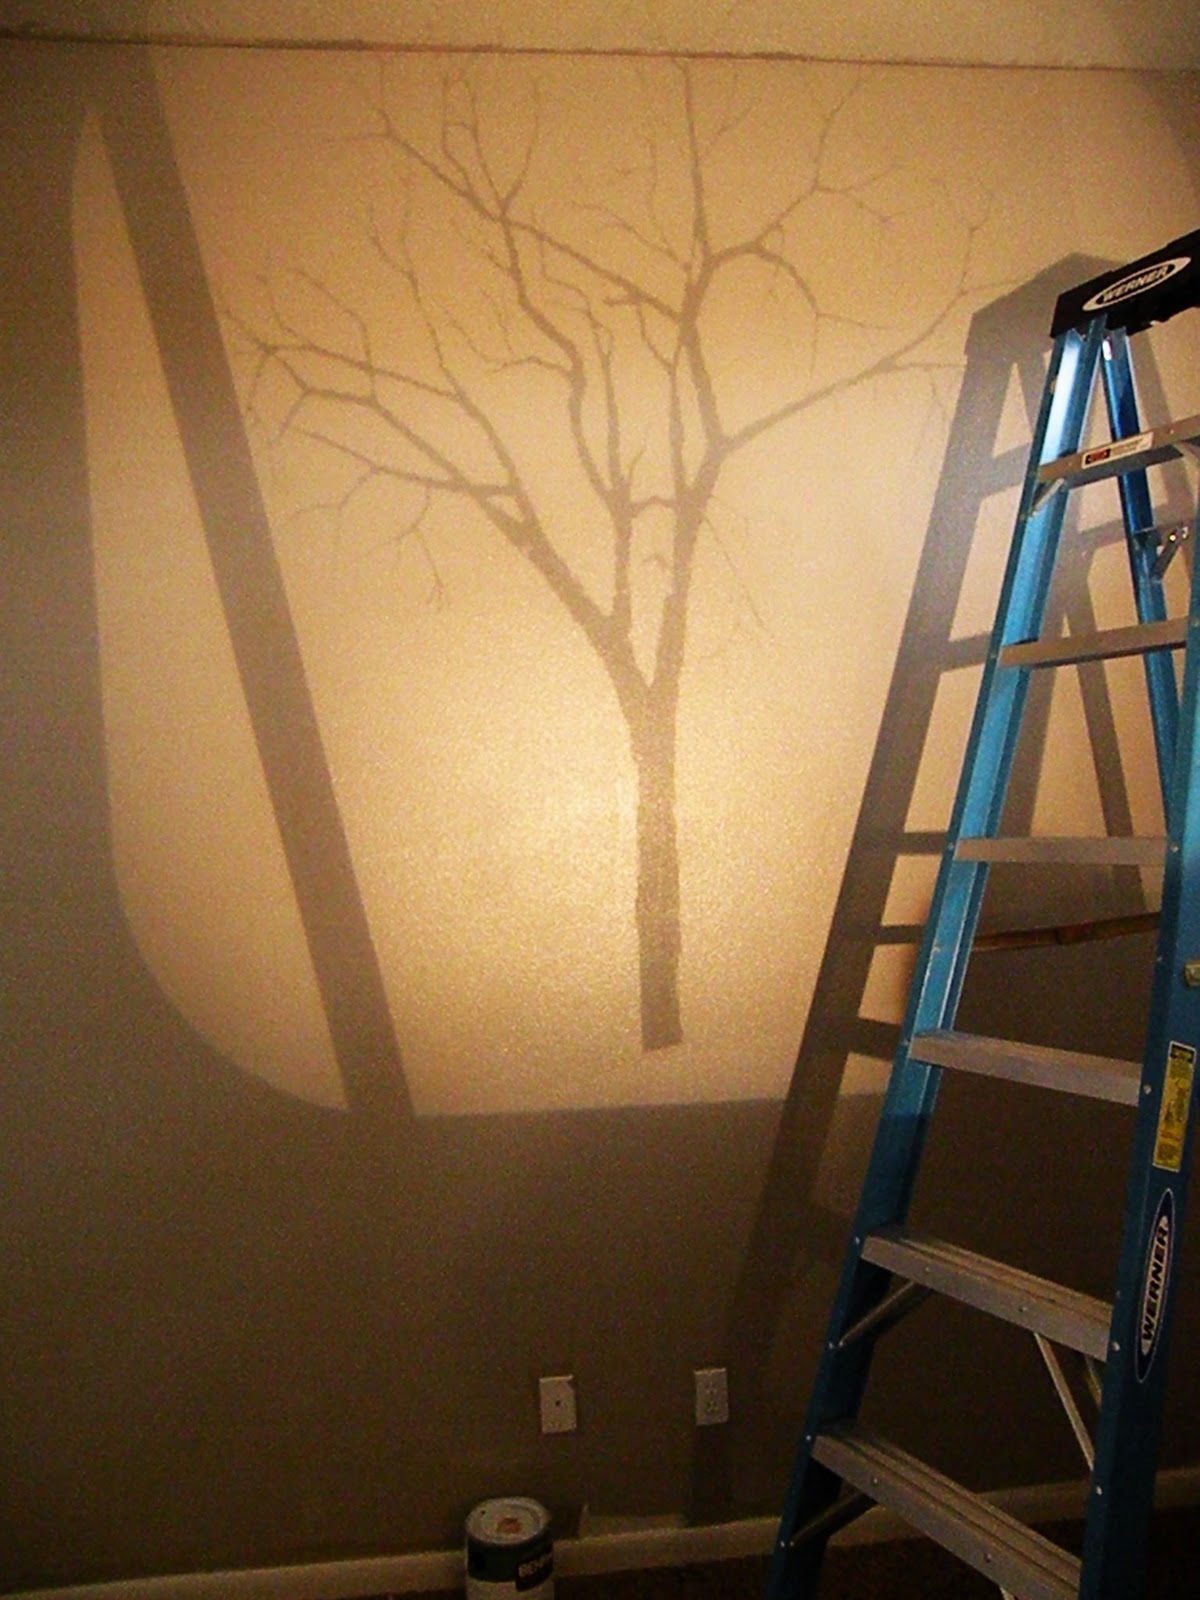 Wall Art Projector - Elitflat